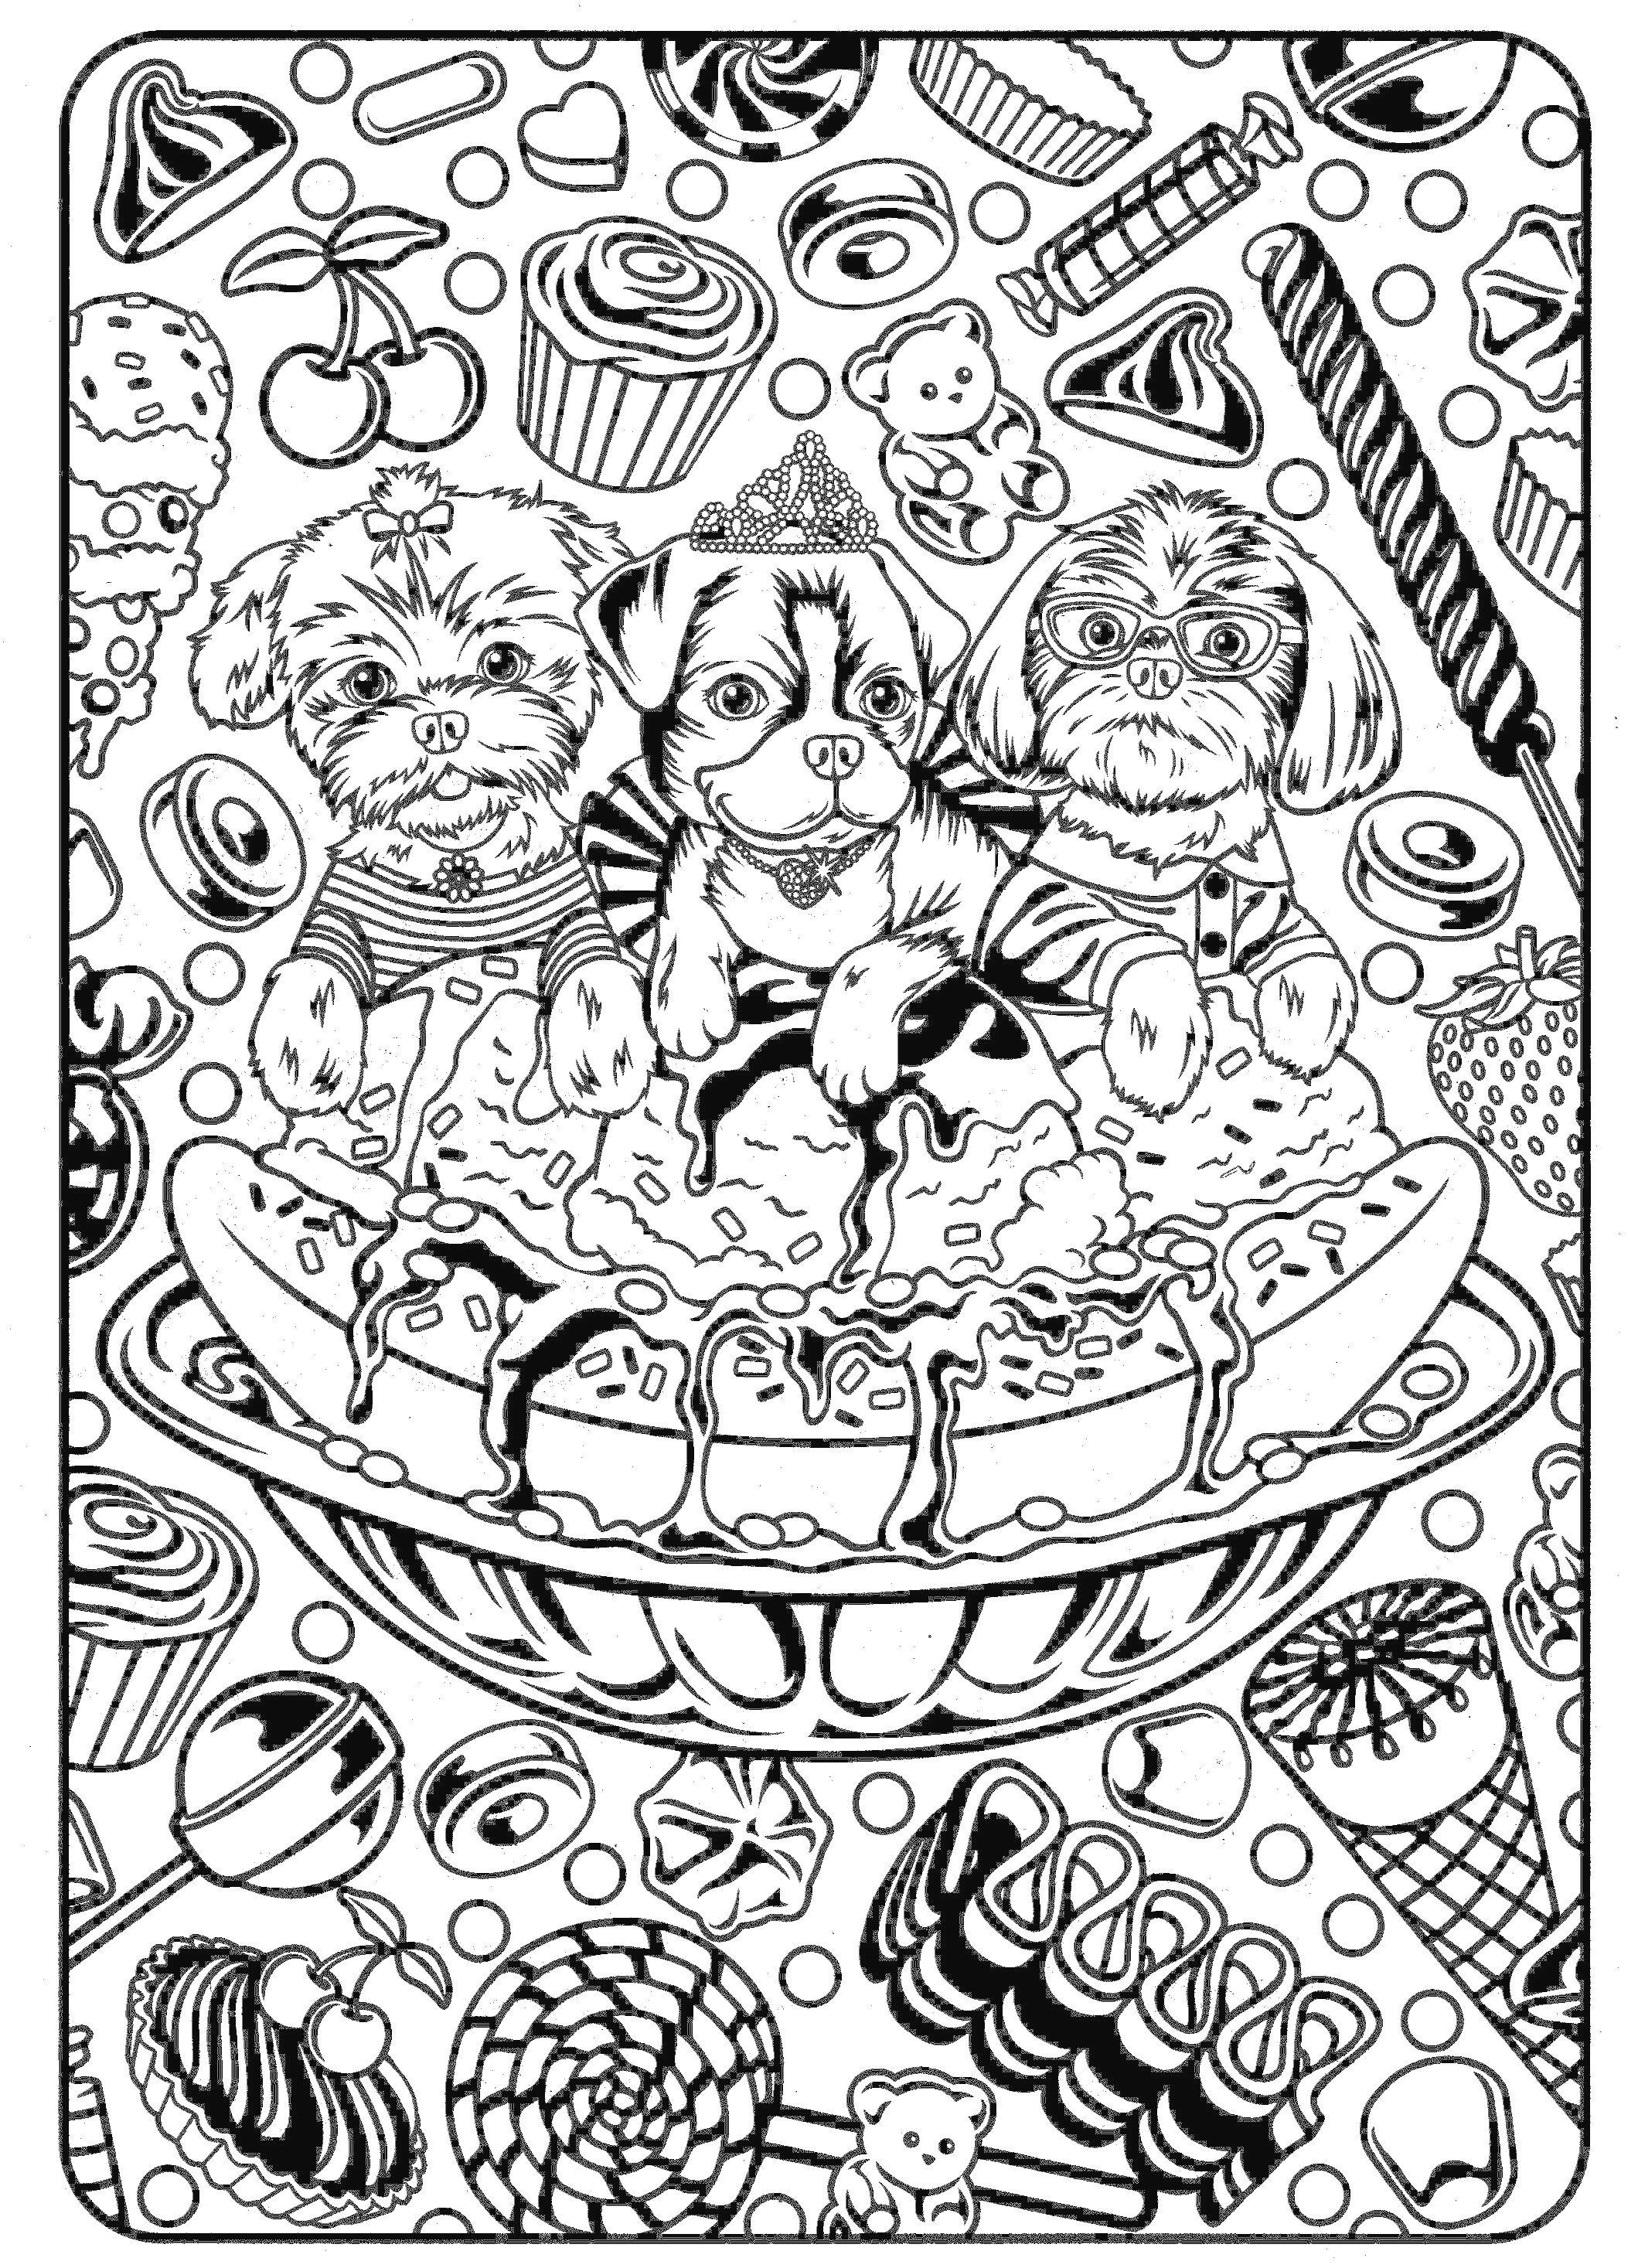 Johnny Appleseed Coloring Page Inspirational Wwe Coloring Pages Cool Coloring Pages Pokemon Coloring Pages Bird Coloring Pages